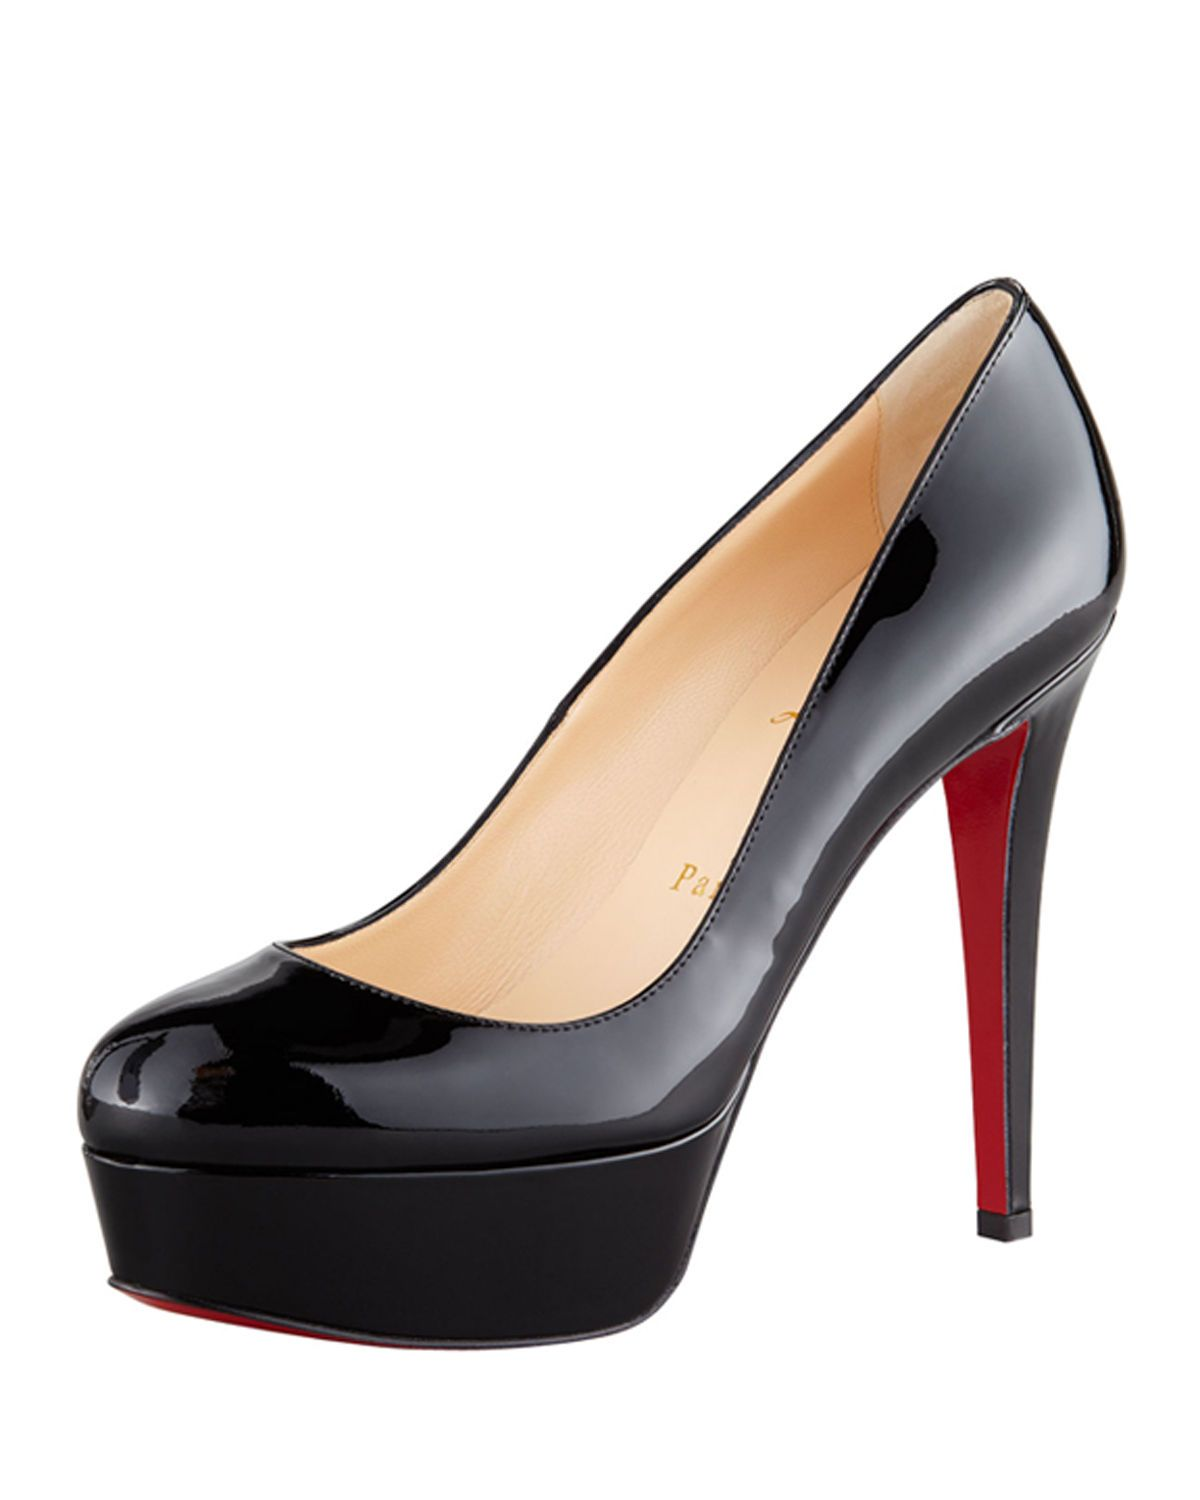 check out 01c43 6f5b8 Christian Louboutin Bianca Patent Leather Platform Red Sole ...